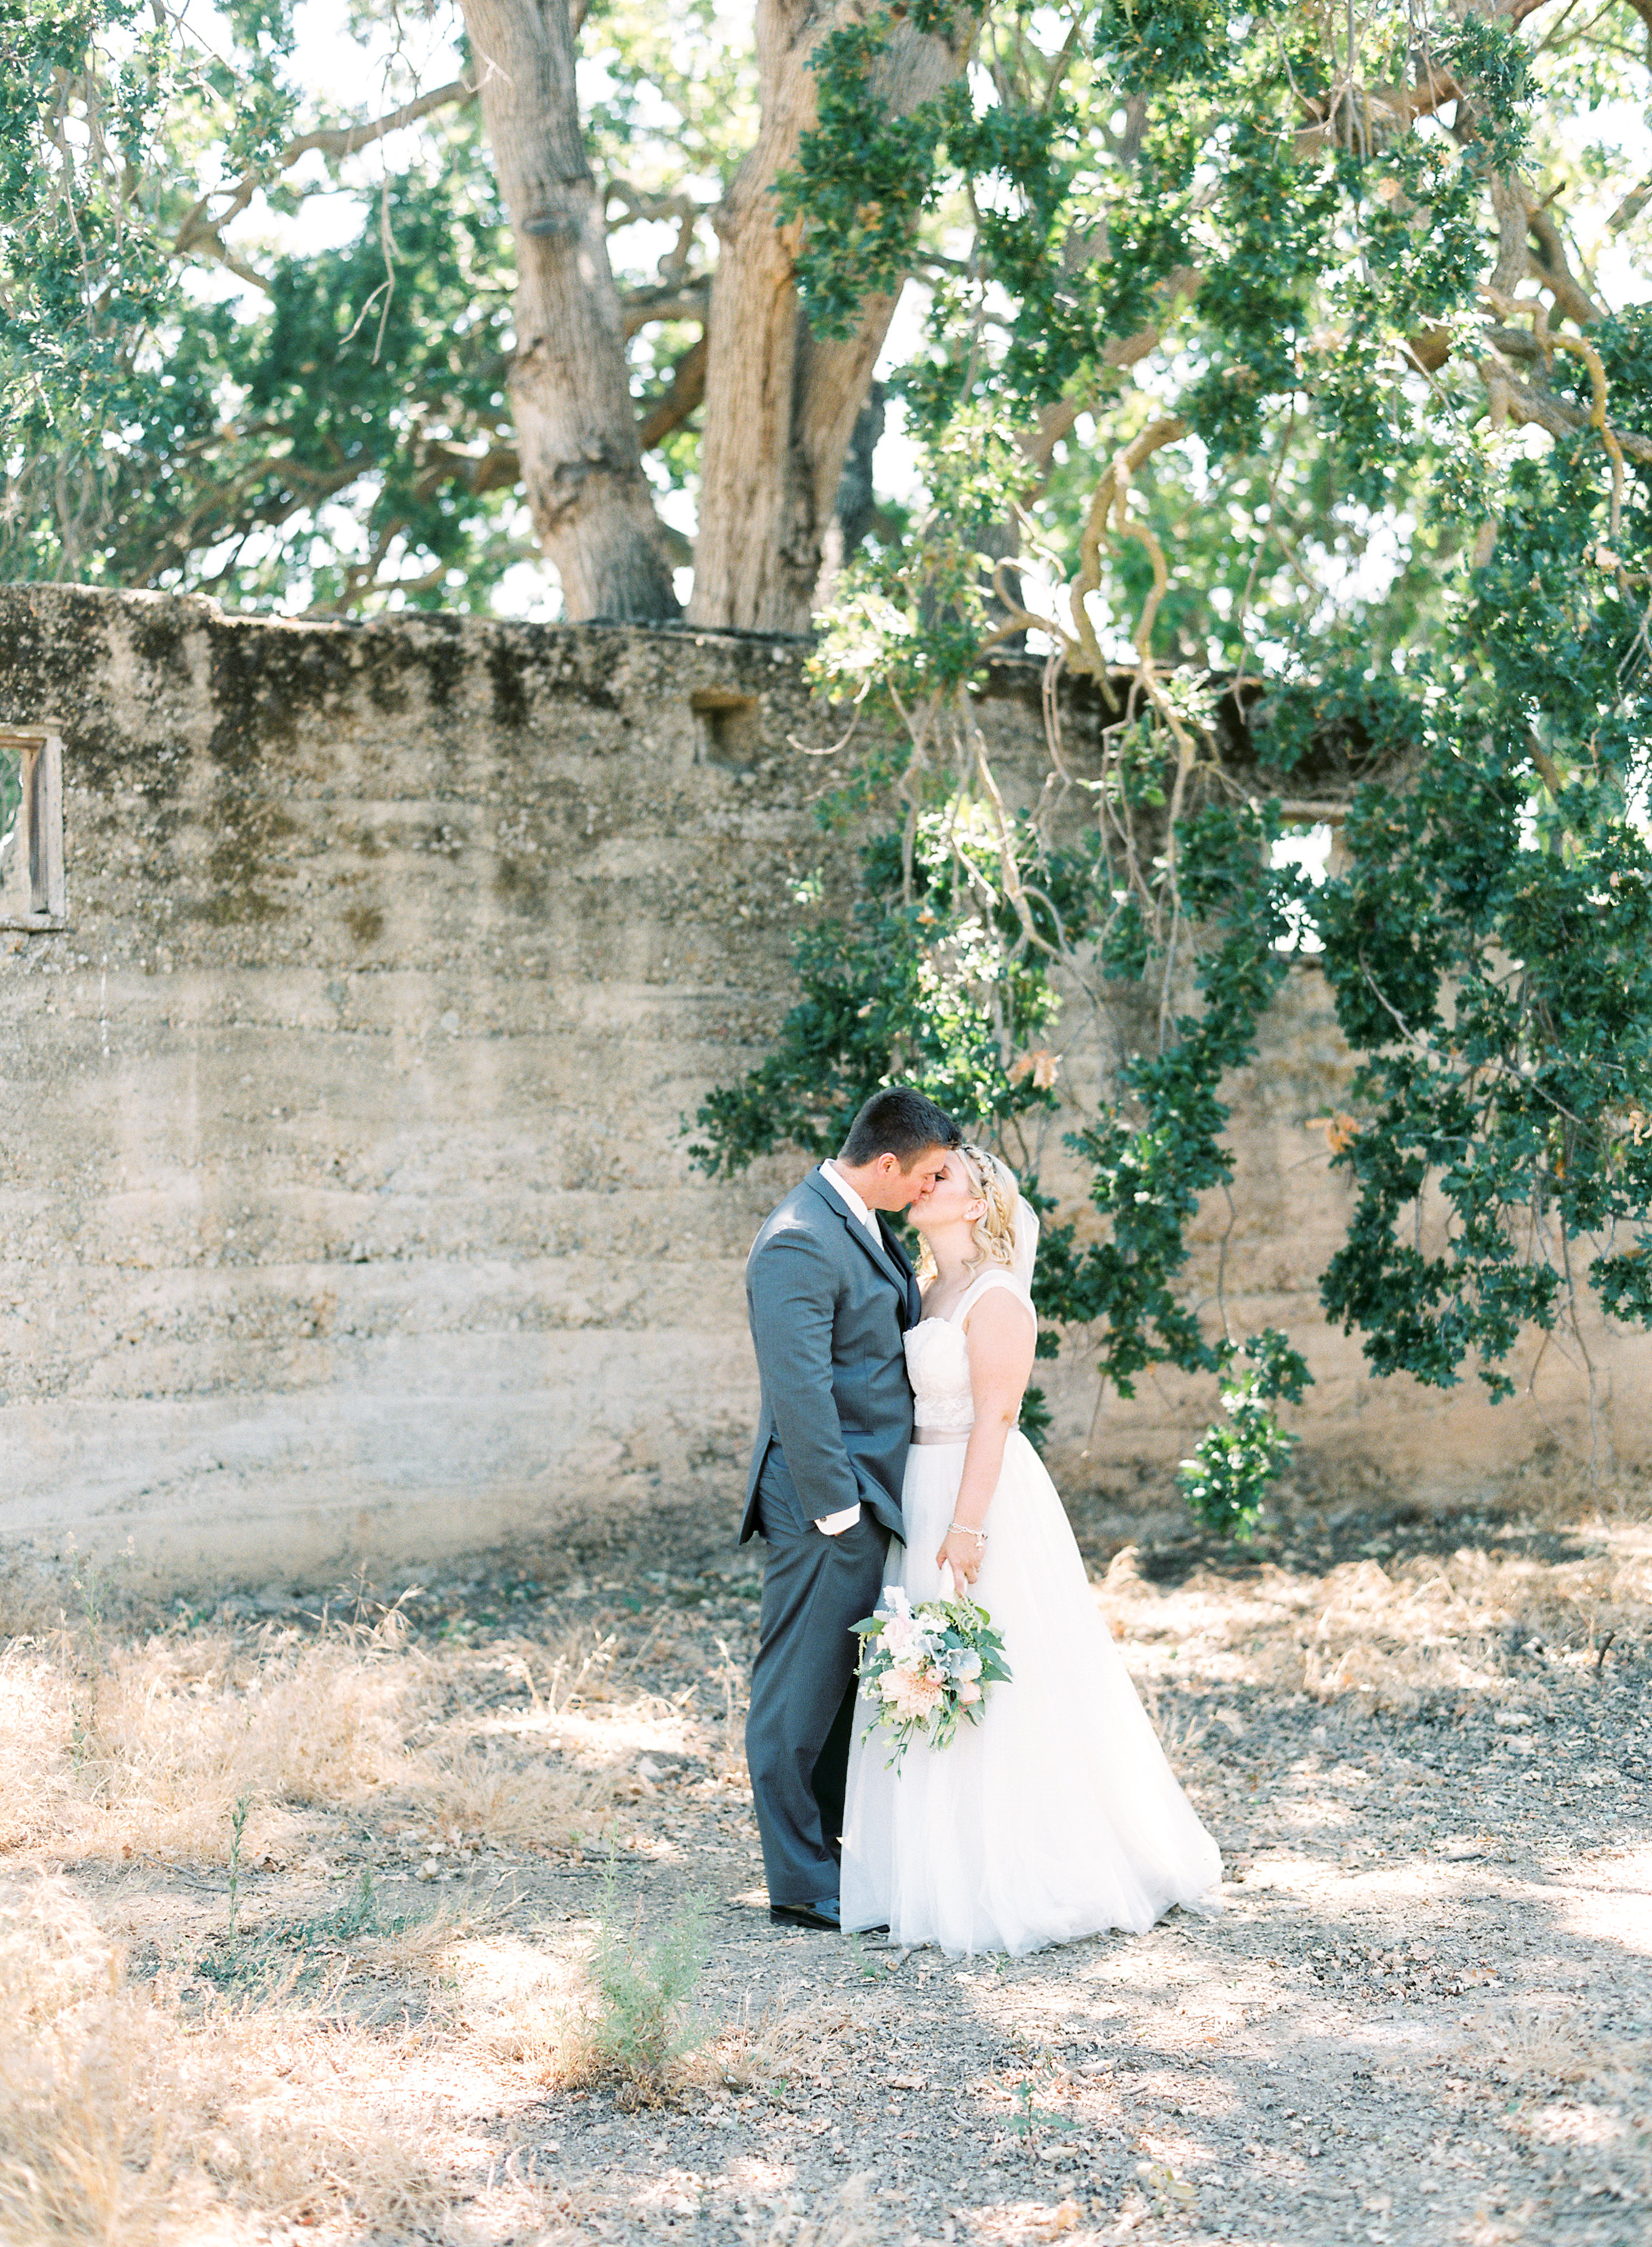 southern-inspired-wedding-at-ravenswood-historic-site-003-5.jpg